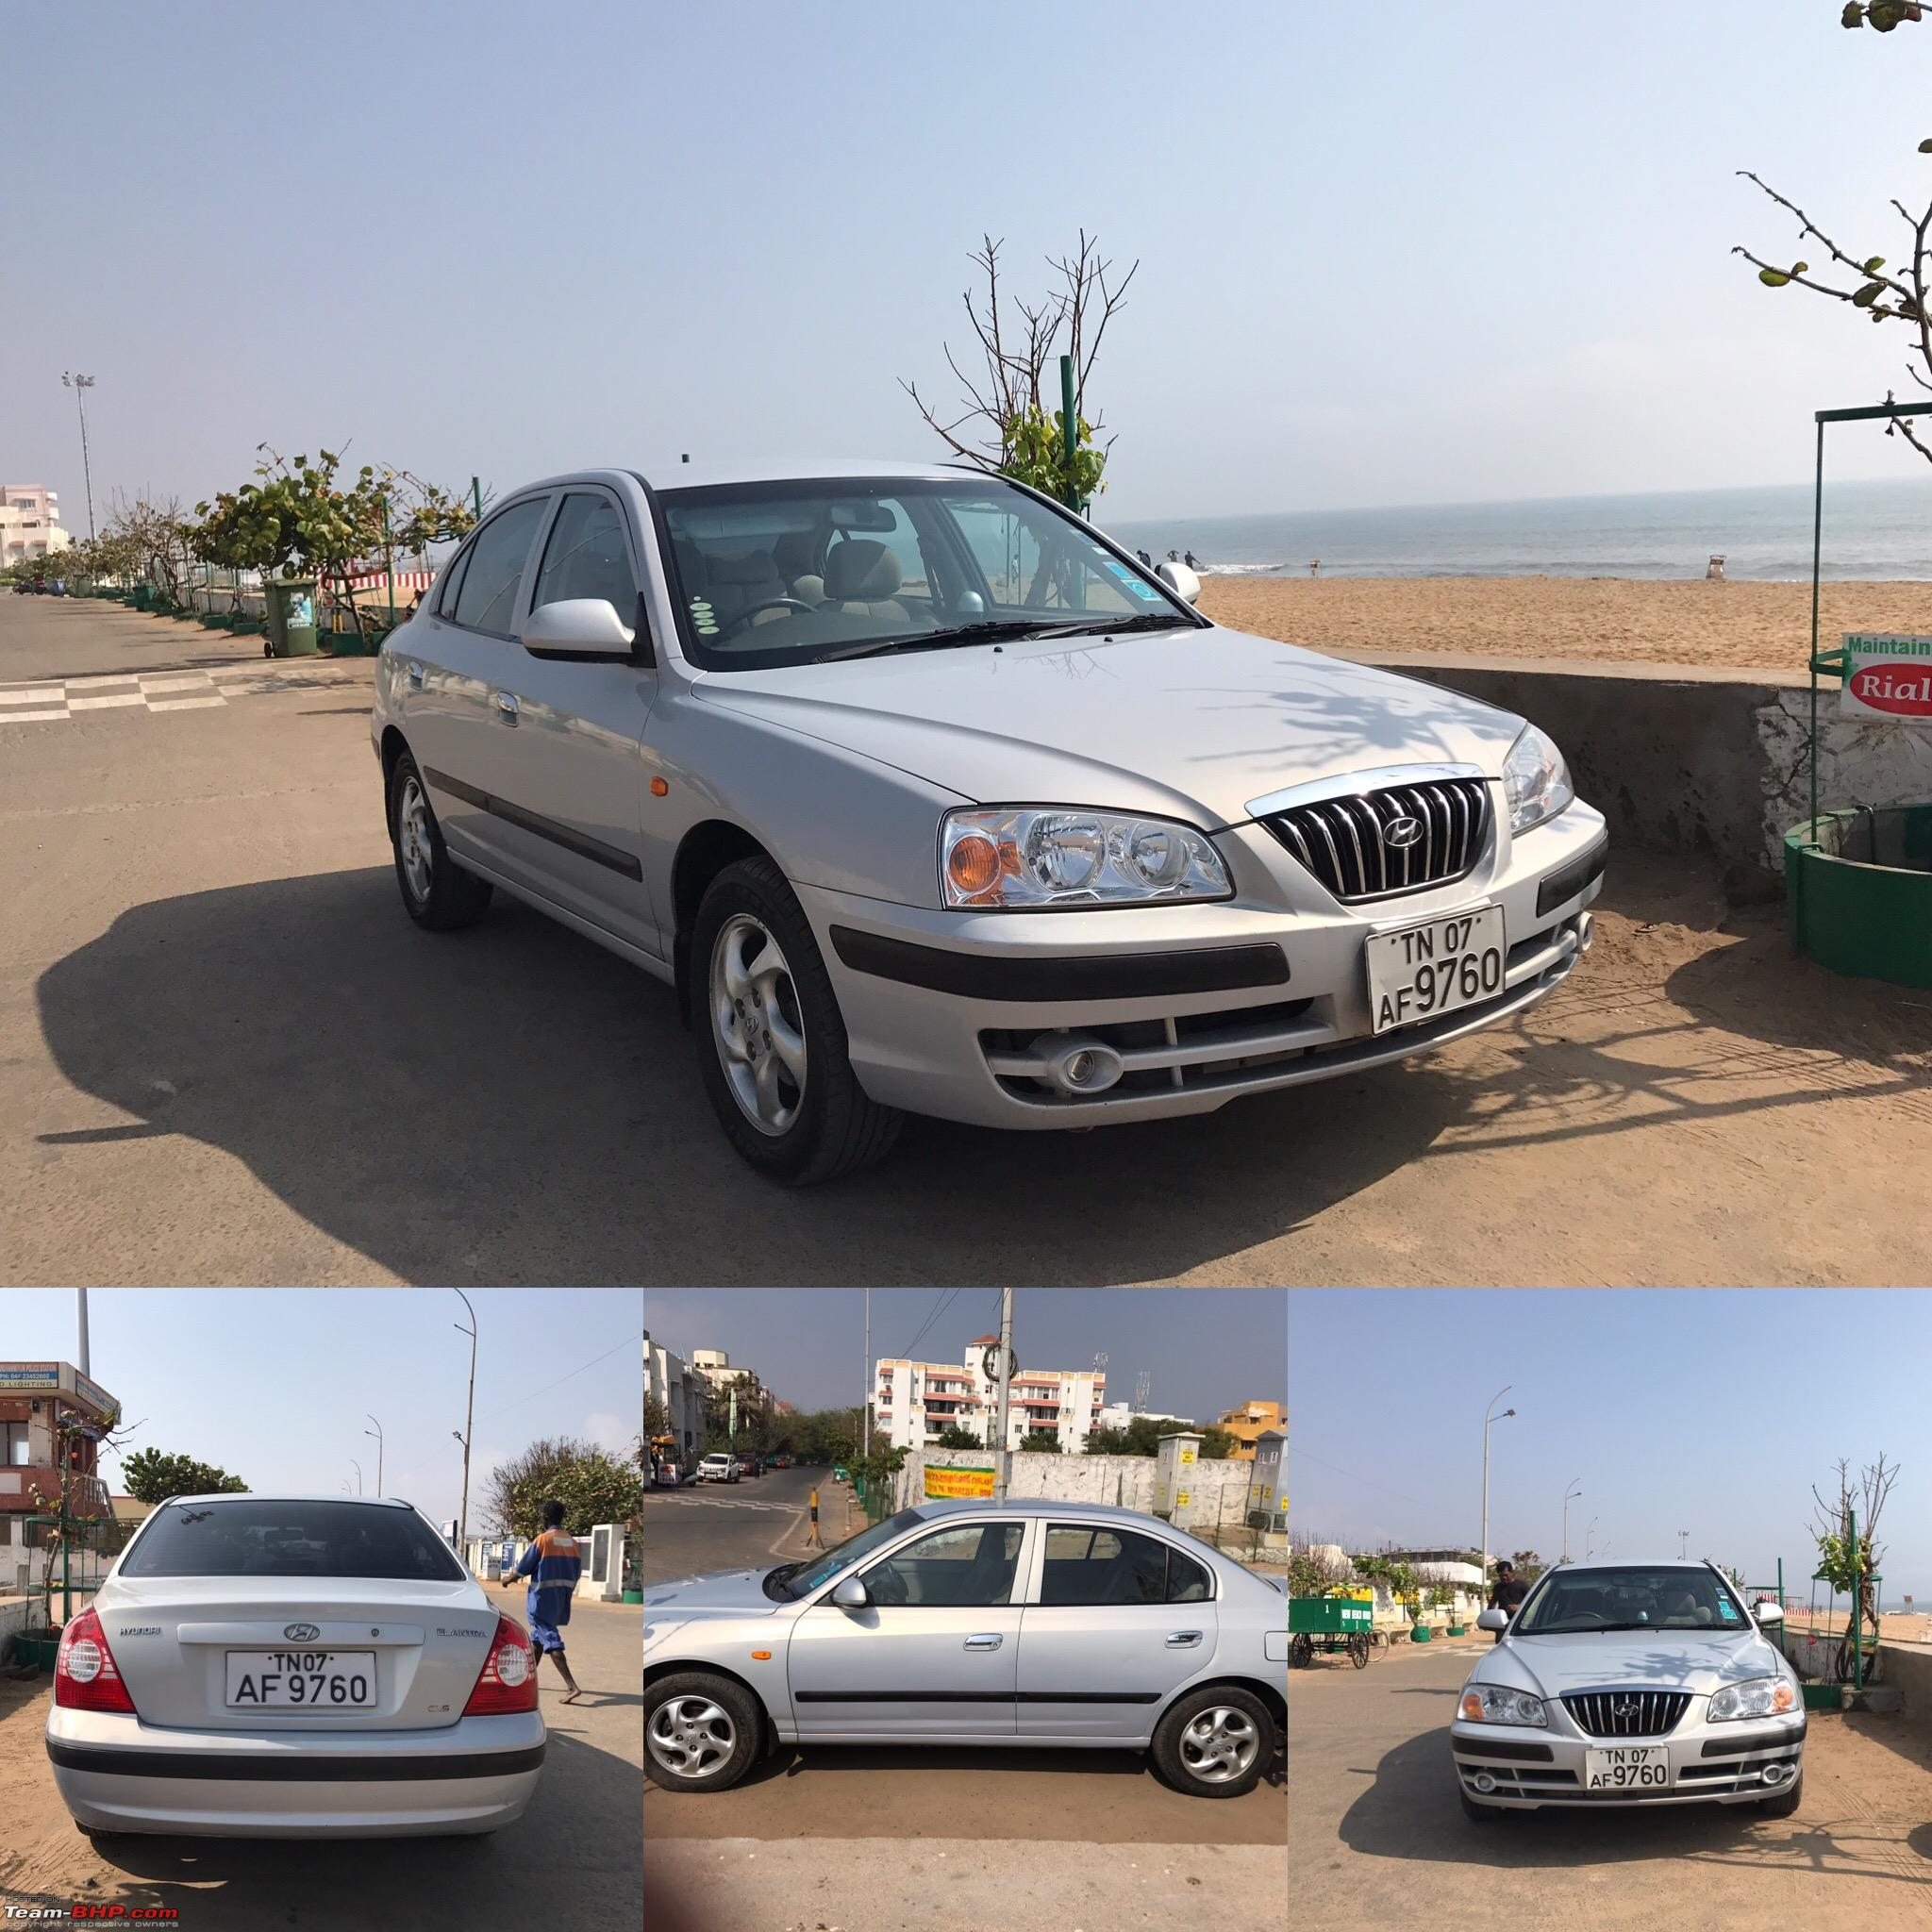 ARTICLE: How To Sell A *USED* Car In India